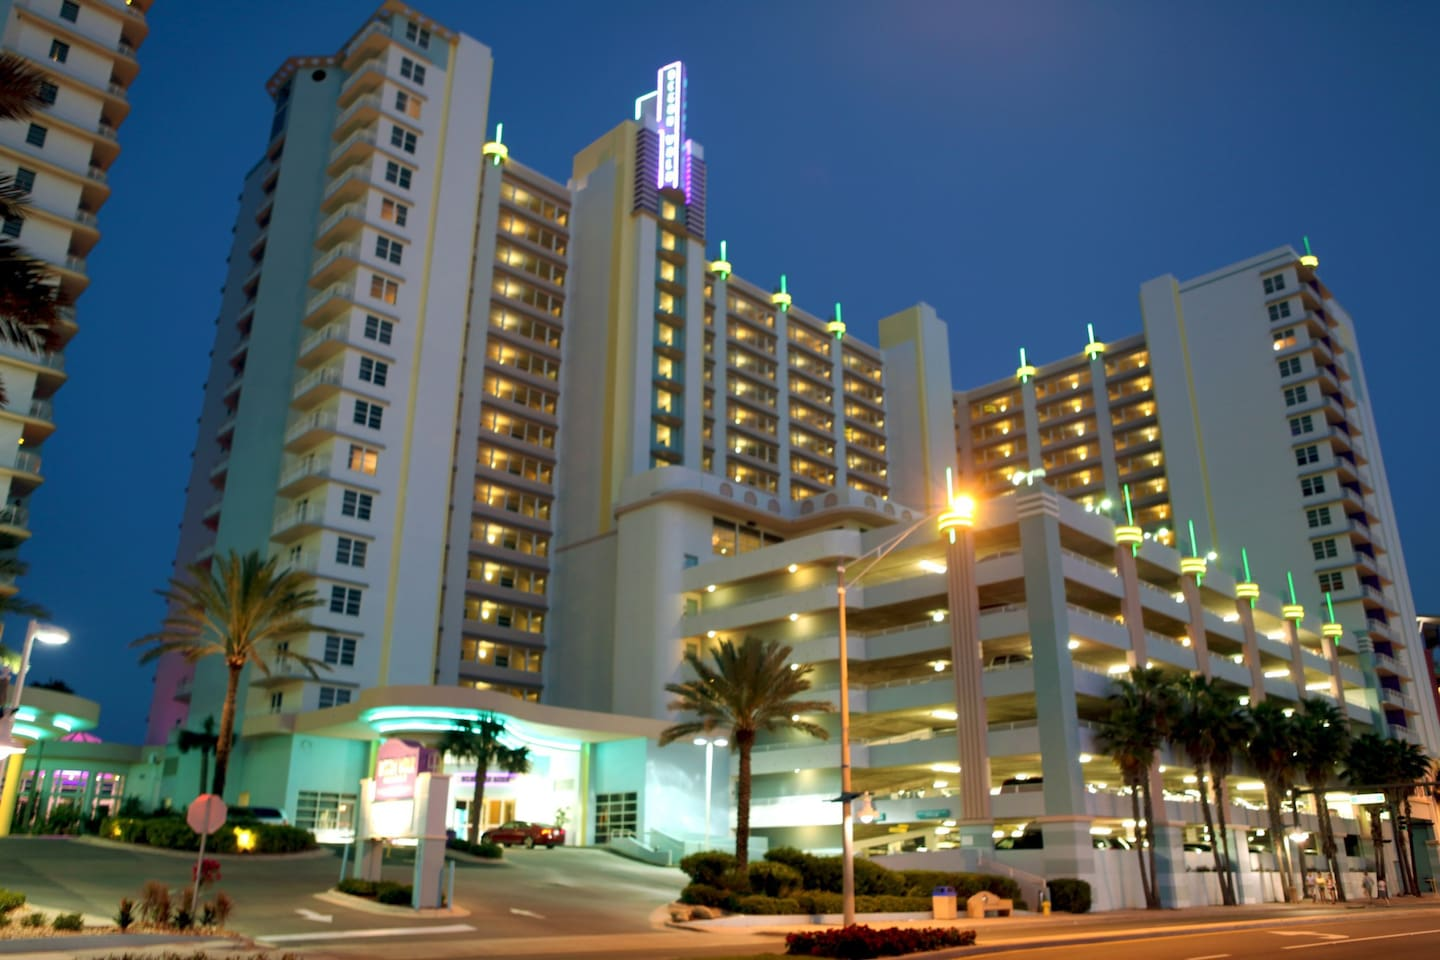 Aug Dec For 3 21 Nights Wyndham Ocean Walk Resort Serviced Apartments In Daytona Beach Florida United States